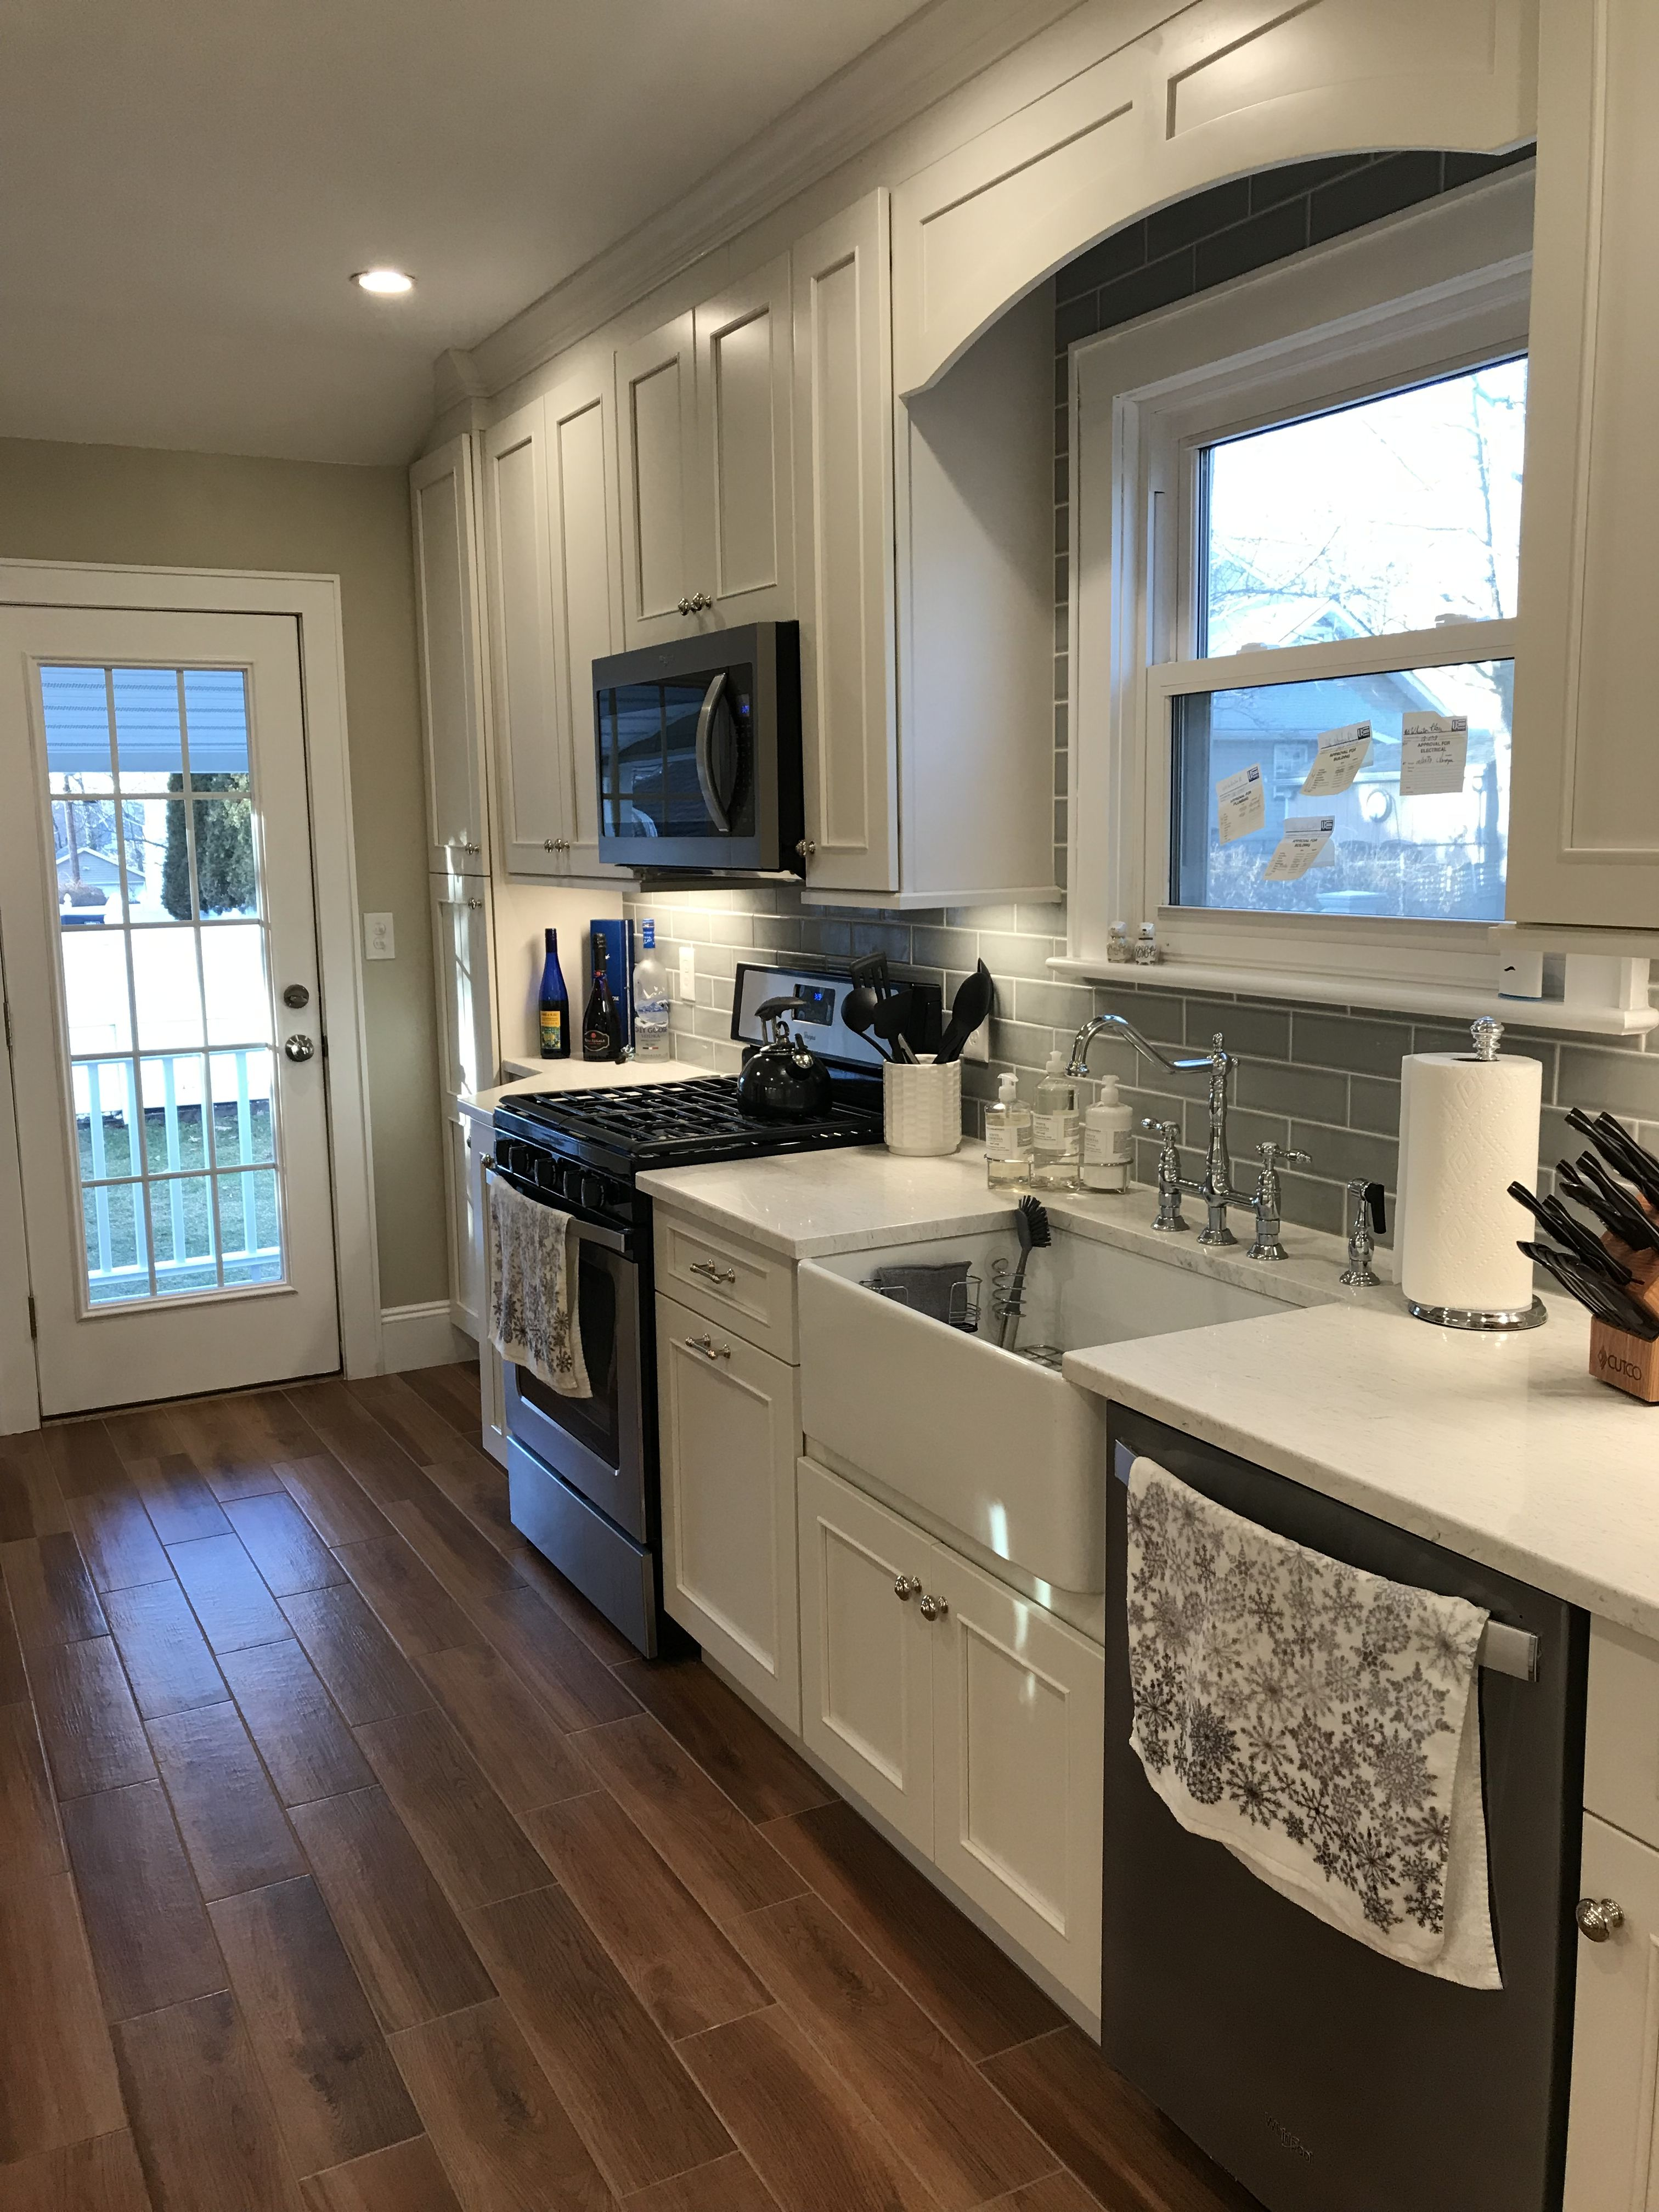 Kitchen Renovation Complete Rutherford Nj Fabuwood Vista Blanc Cabinets Countertop Is Timber Whi Kitchen Renovation Kitchen Cabinet Design Complete Kitchens